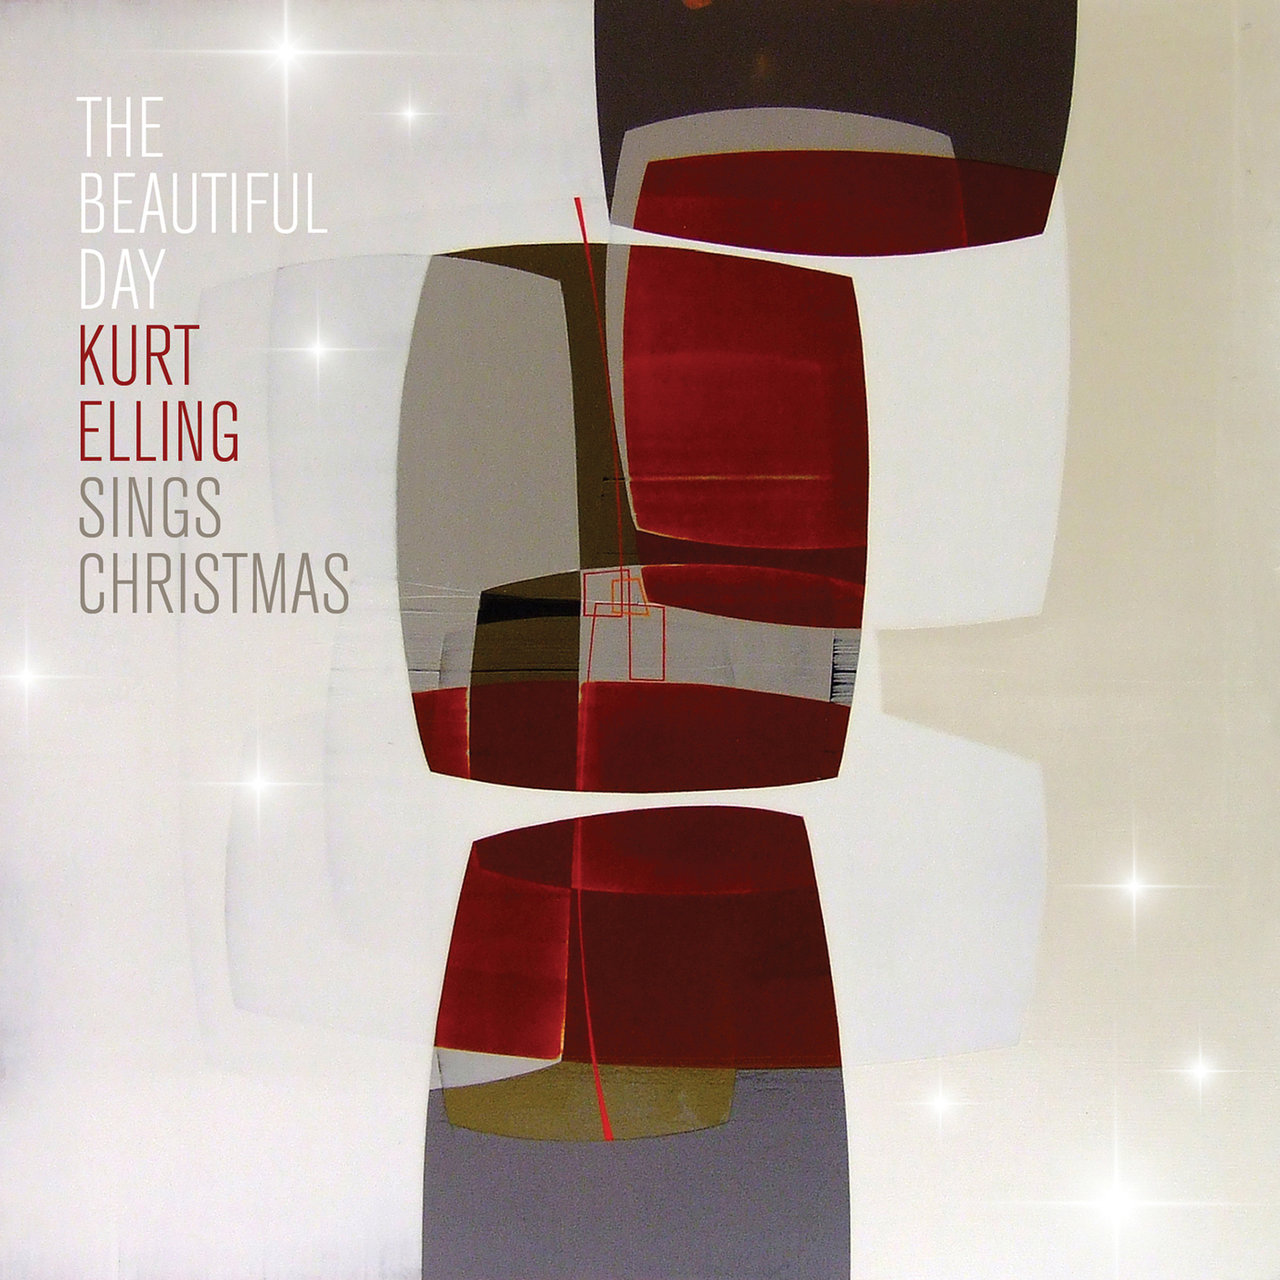 The Beautiful Day (Kurt Elling Sings Christmas)